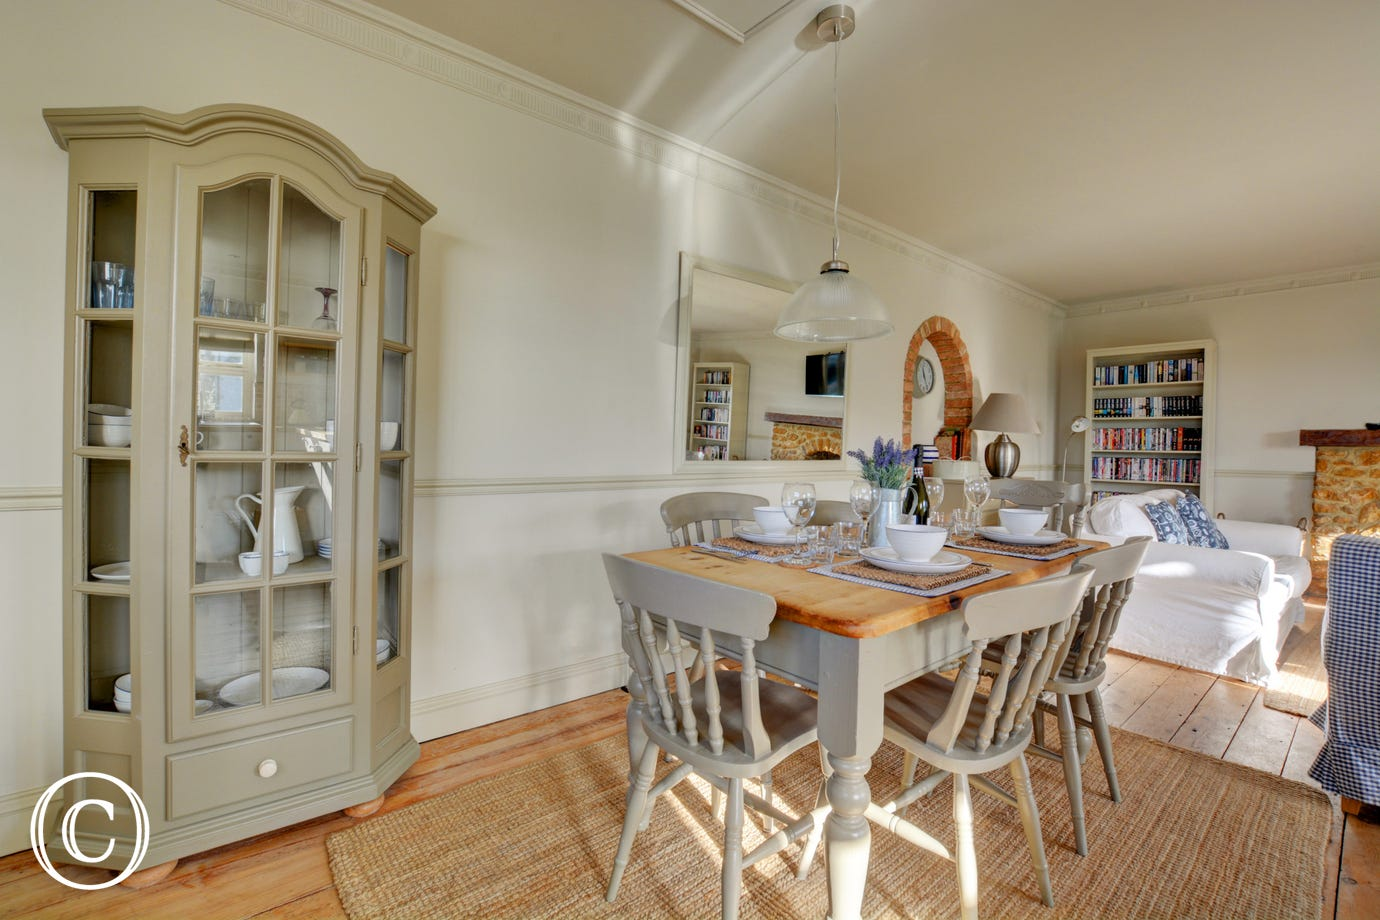 Dining Area with table and chairs - the perfect spot to make holiday plans over breakfast